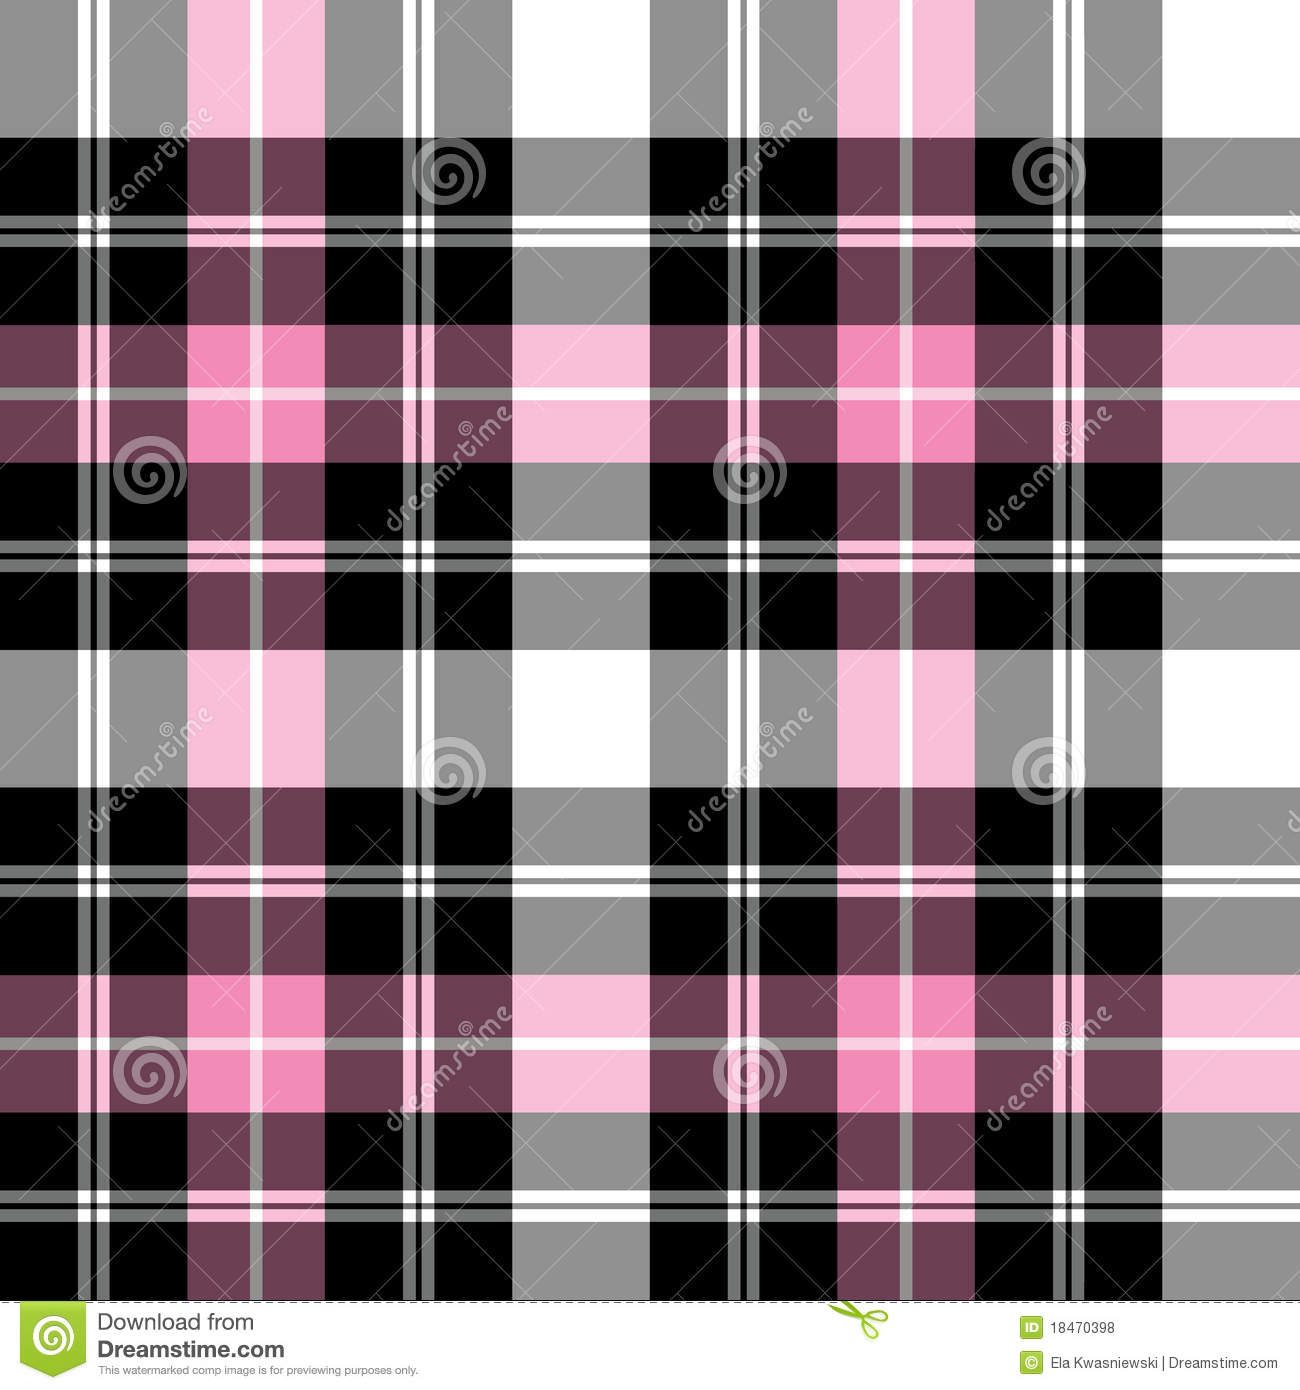 tartan plaid pattern royalty free stock photos image. Black Bedroom Furniture Sets. Home Design Ideas